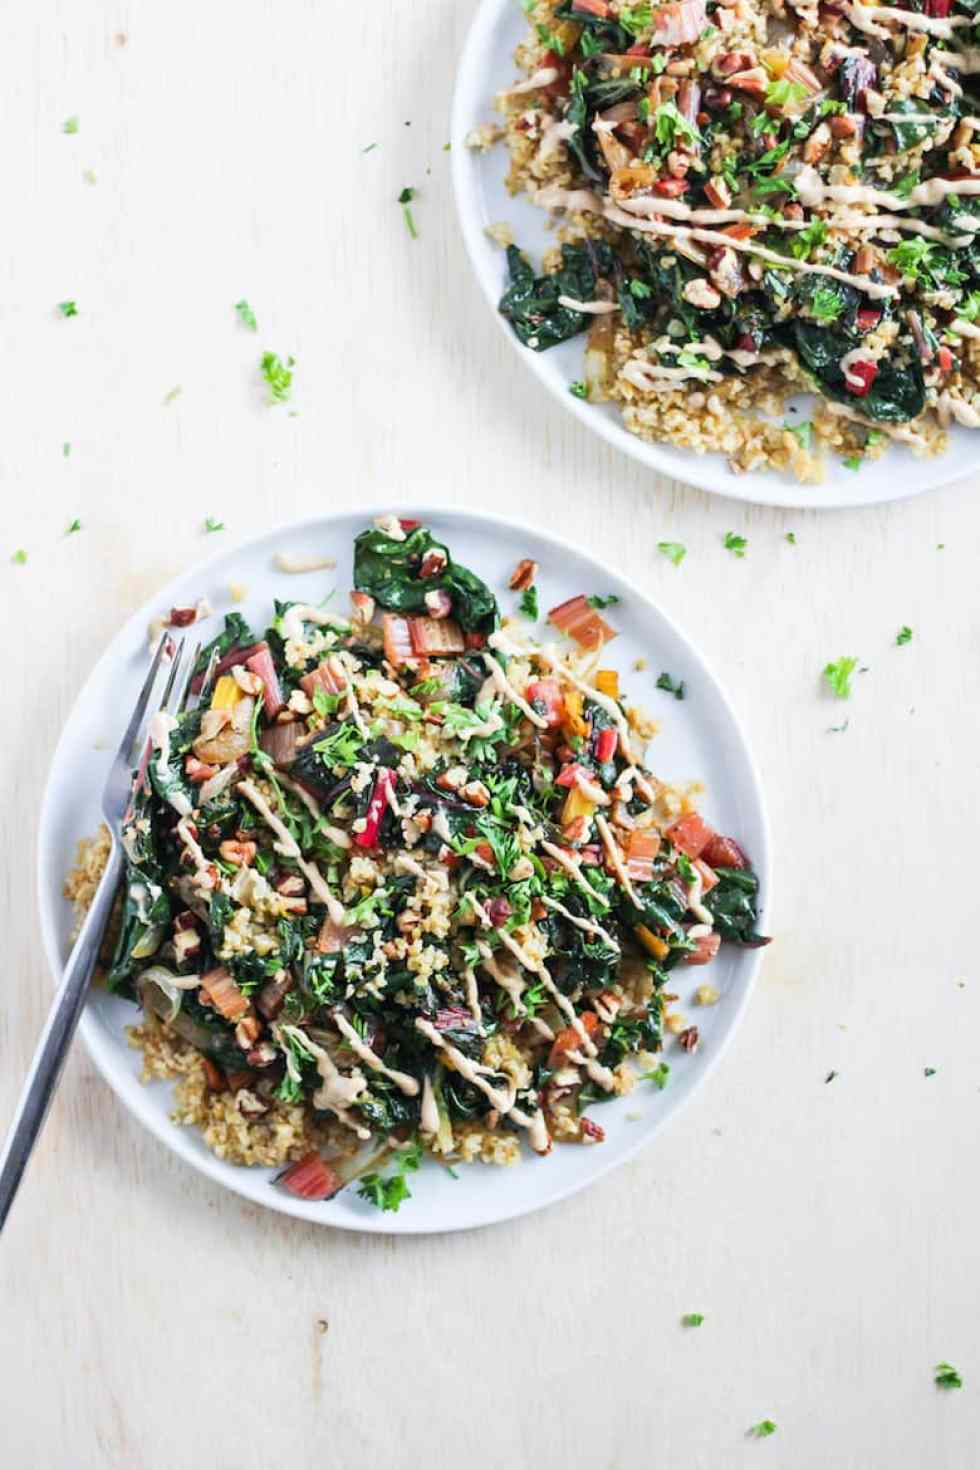 Toasted freekeh and greens on white plates.